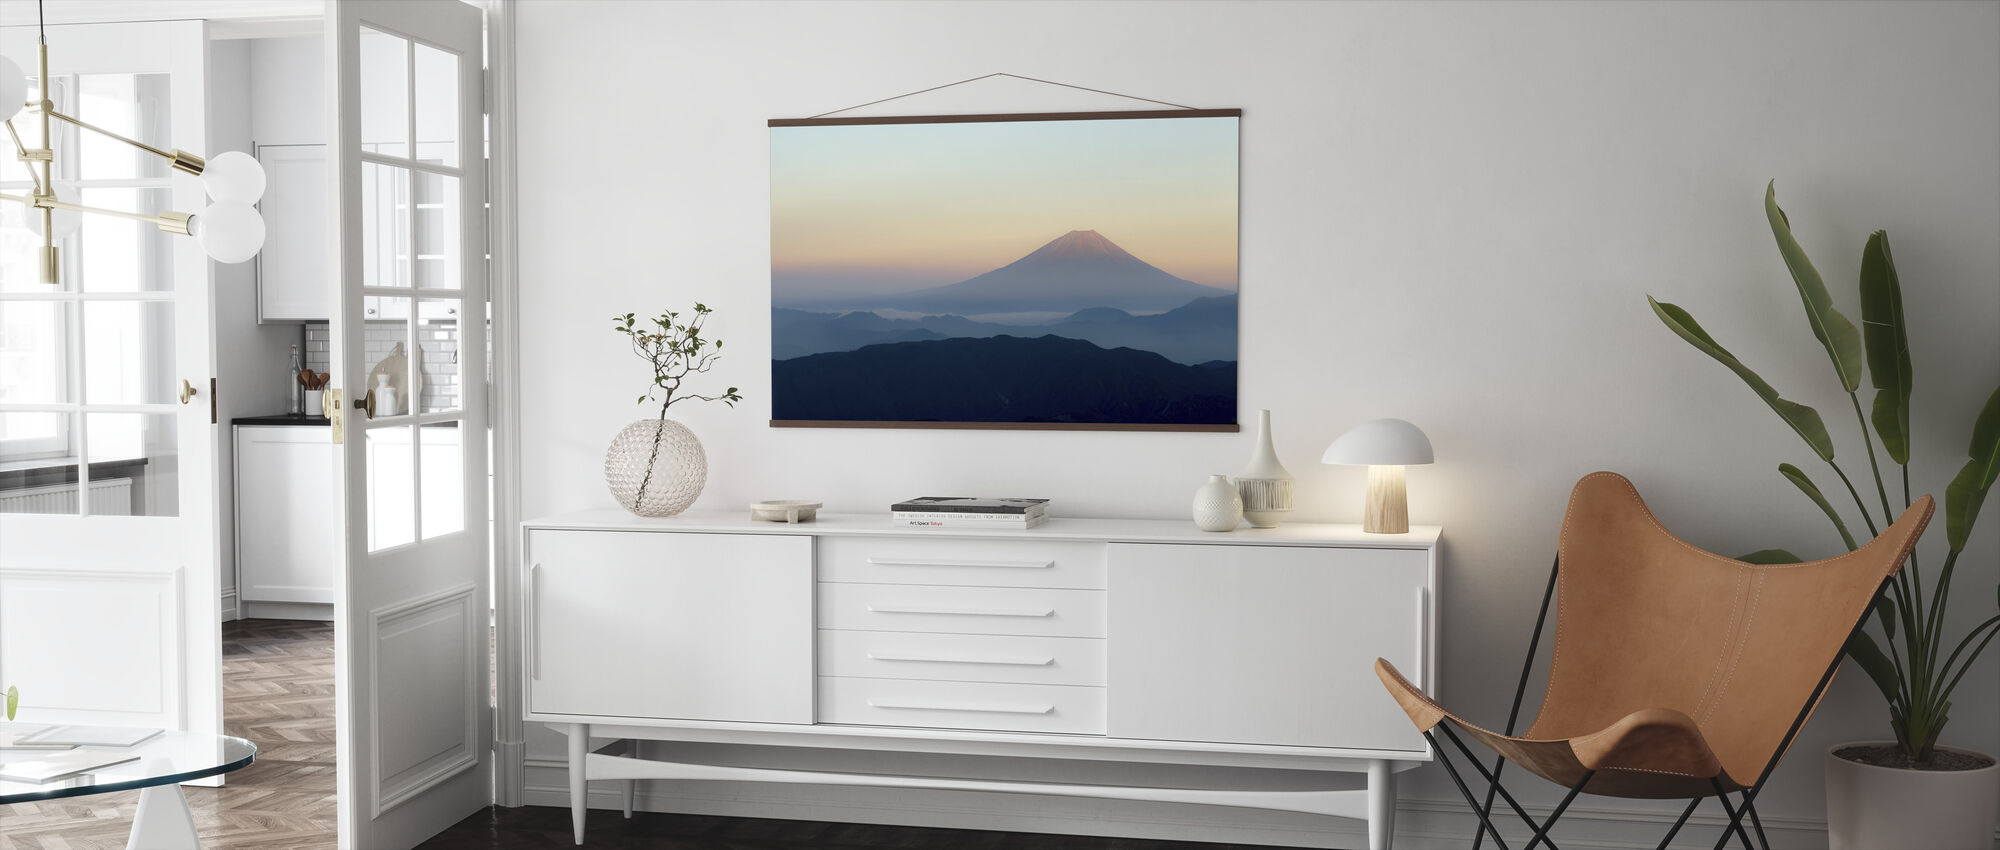 Mt. Fuji - Poster - Living Room